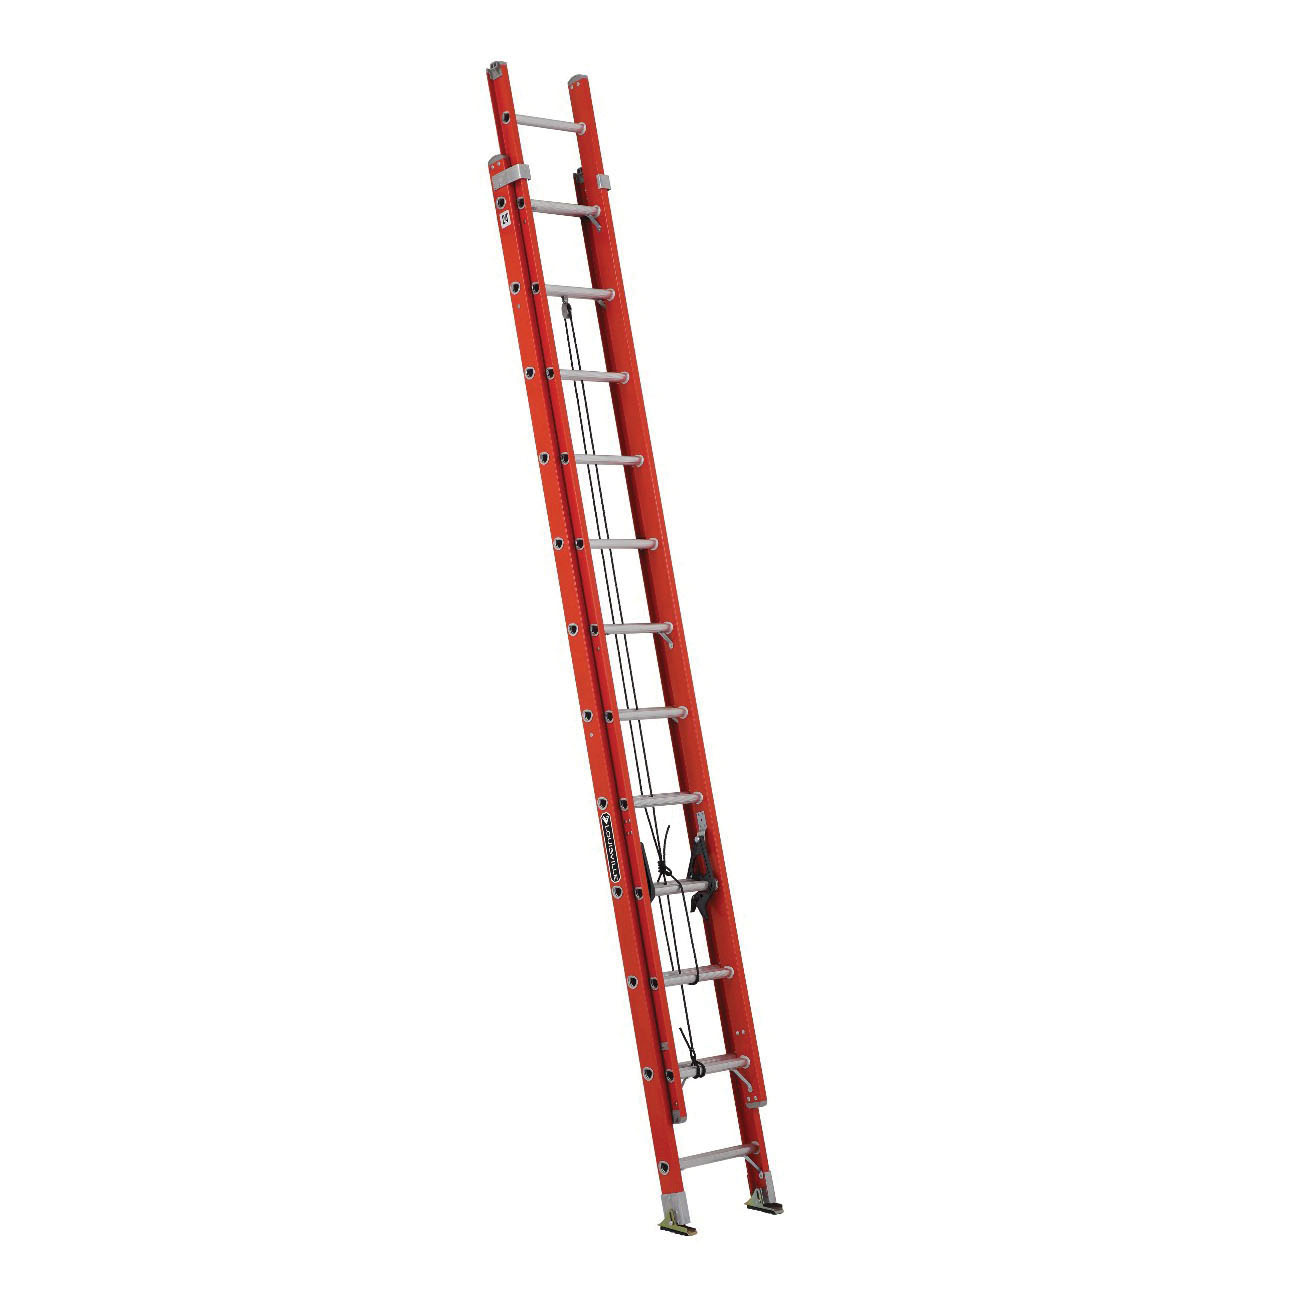 Louisville® FE3224 FE3200 Multi-Section Extension Ladder, 148 in OAL, ANSI Code: 14.4, 300 lb Load, Fiberglass, 12 in Adjustable Increments